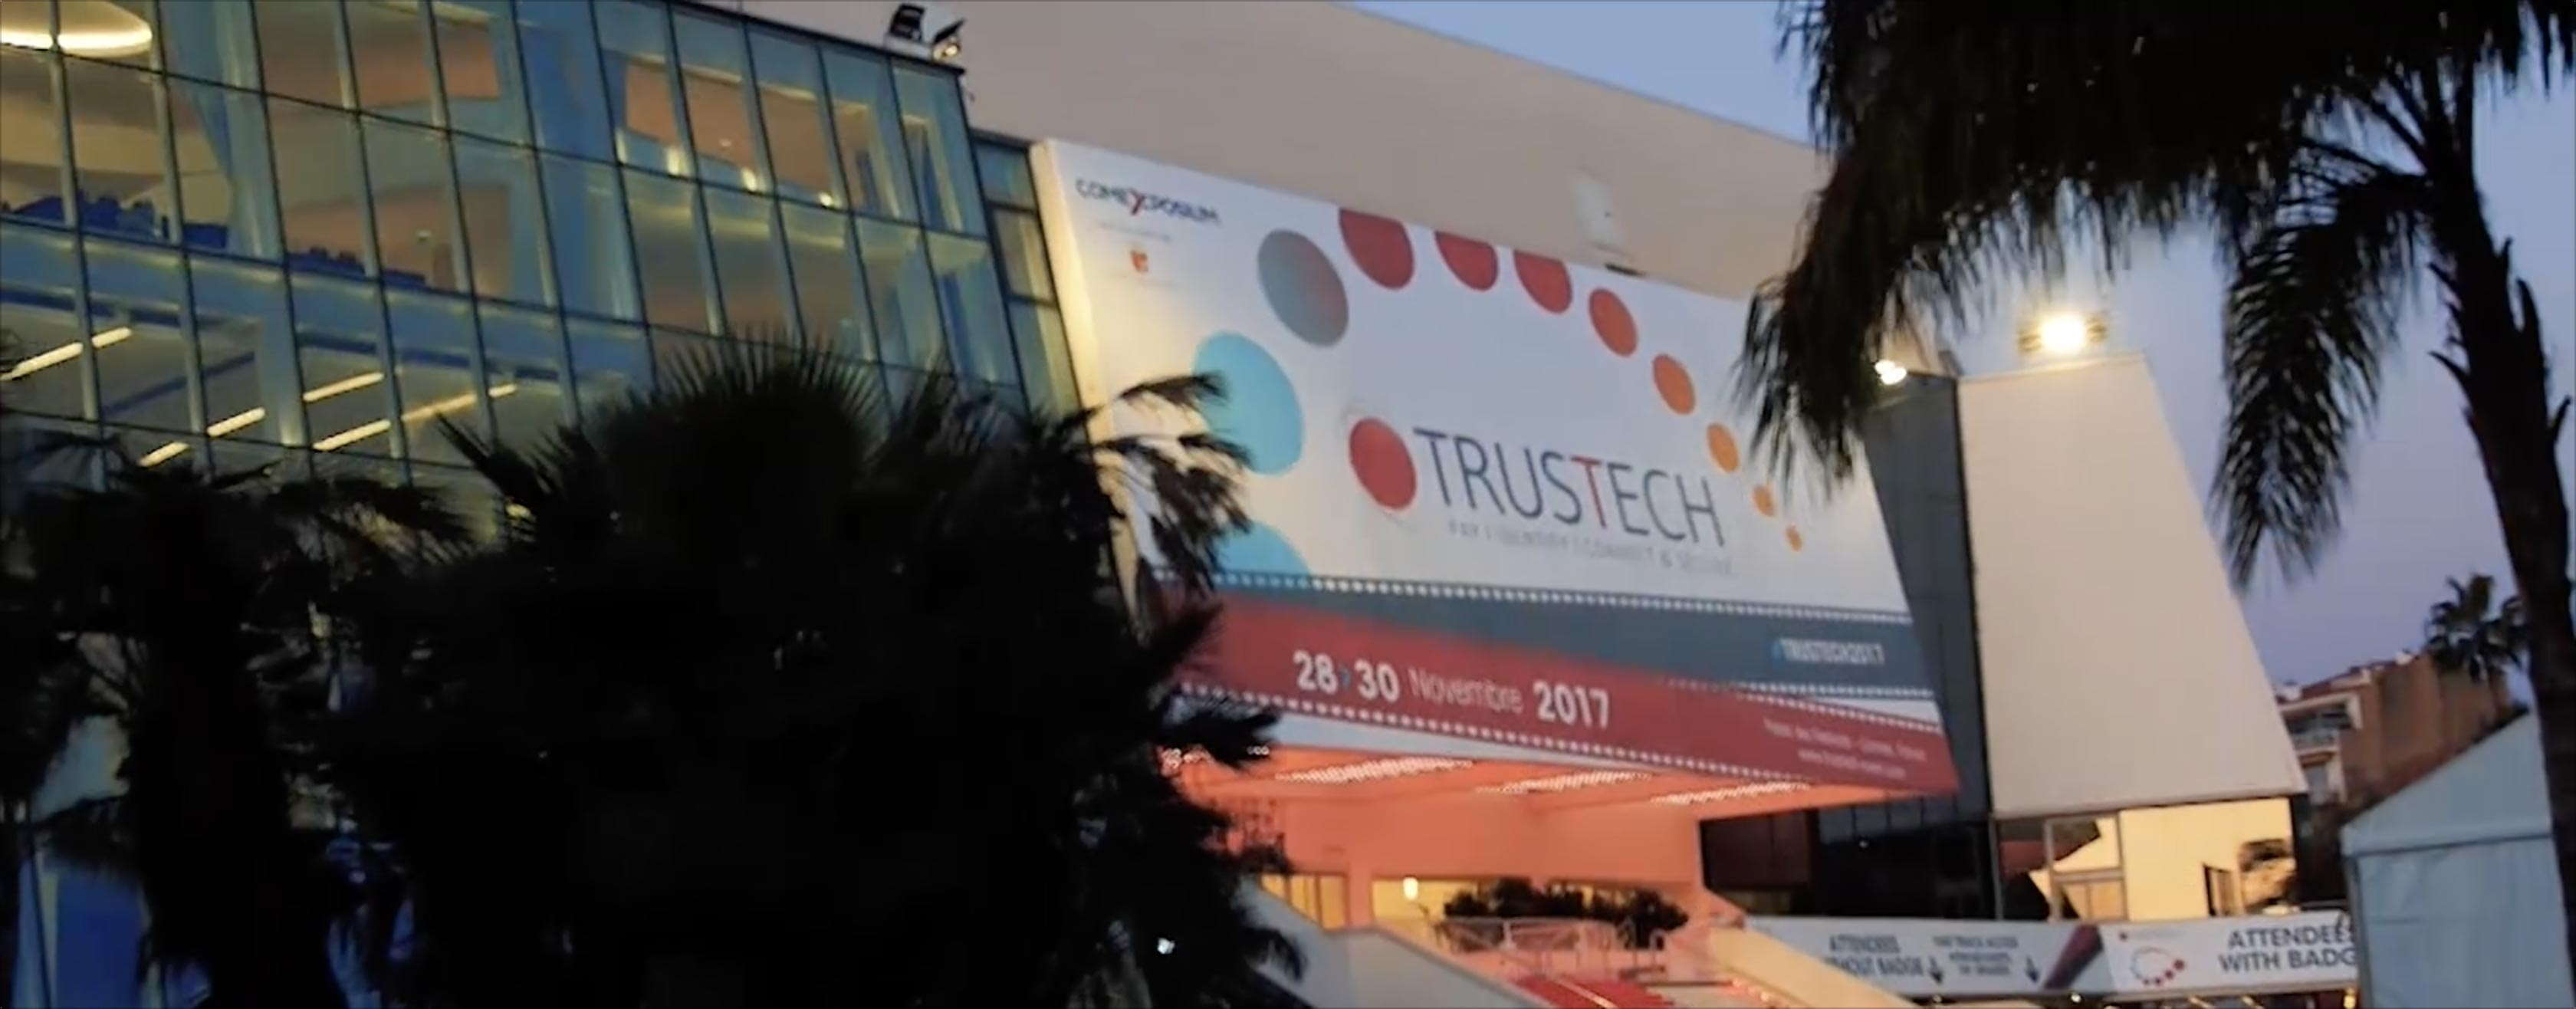 TRUSTECH, Leading Event For Digital Trust Technologies